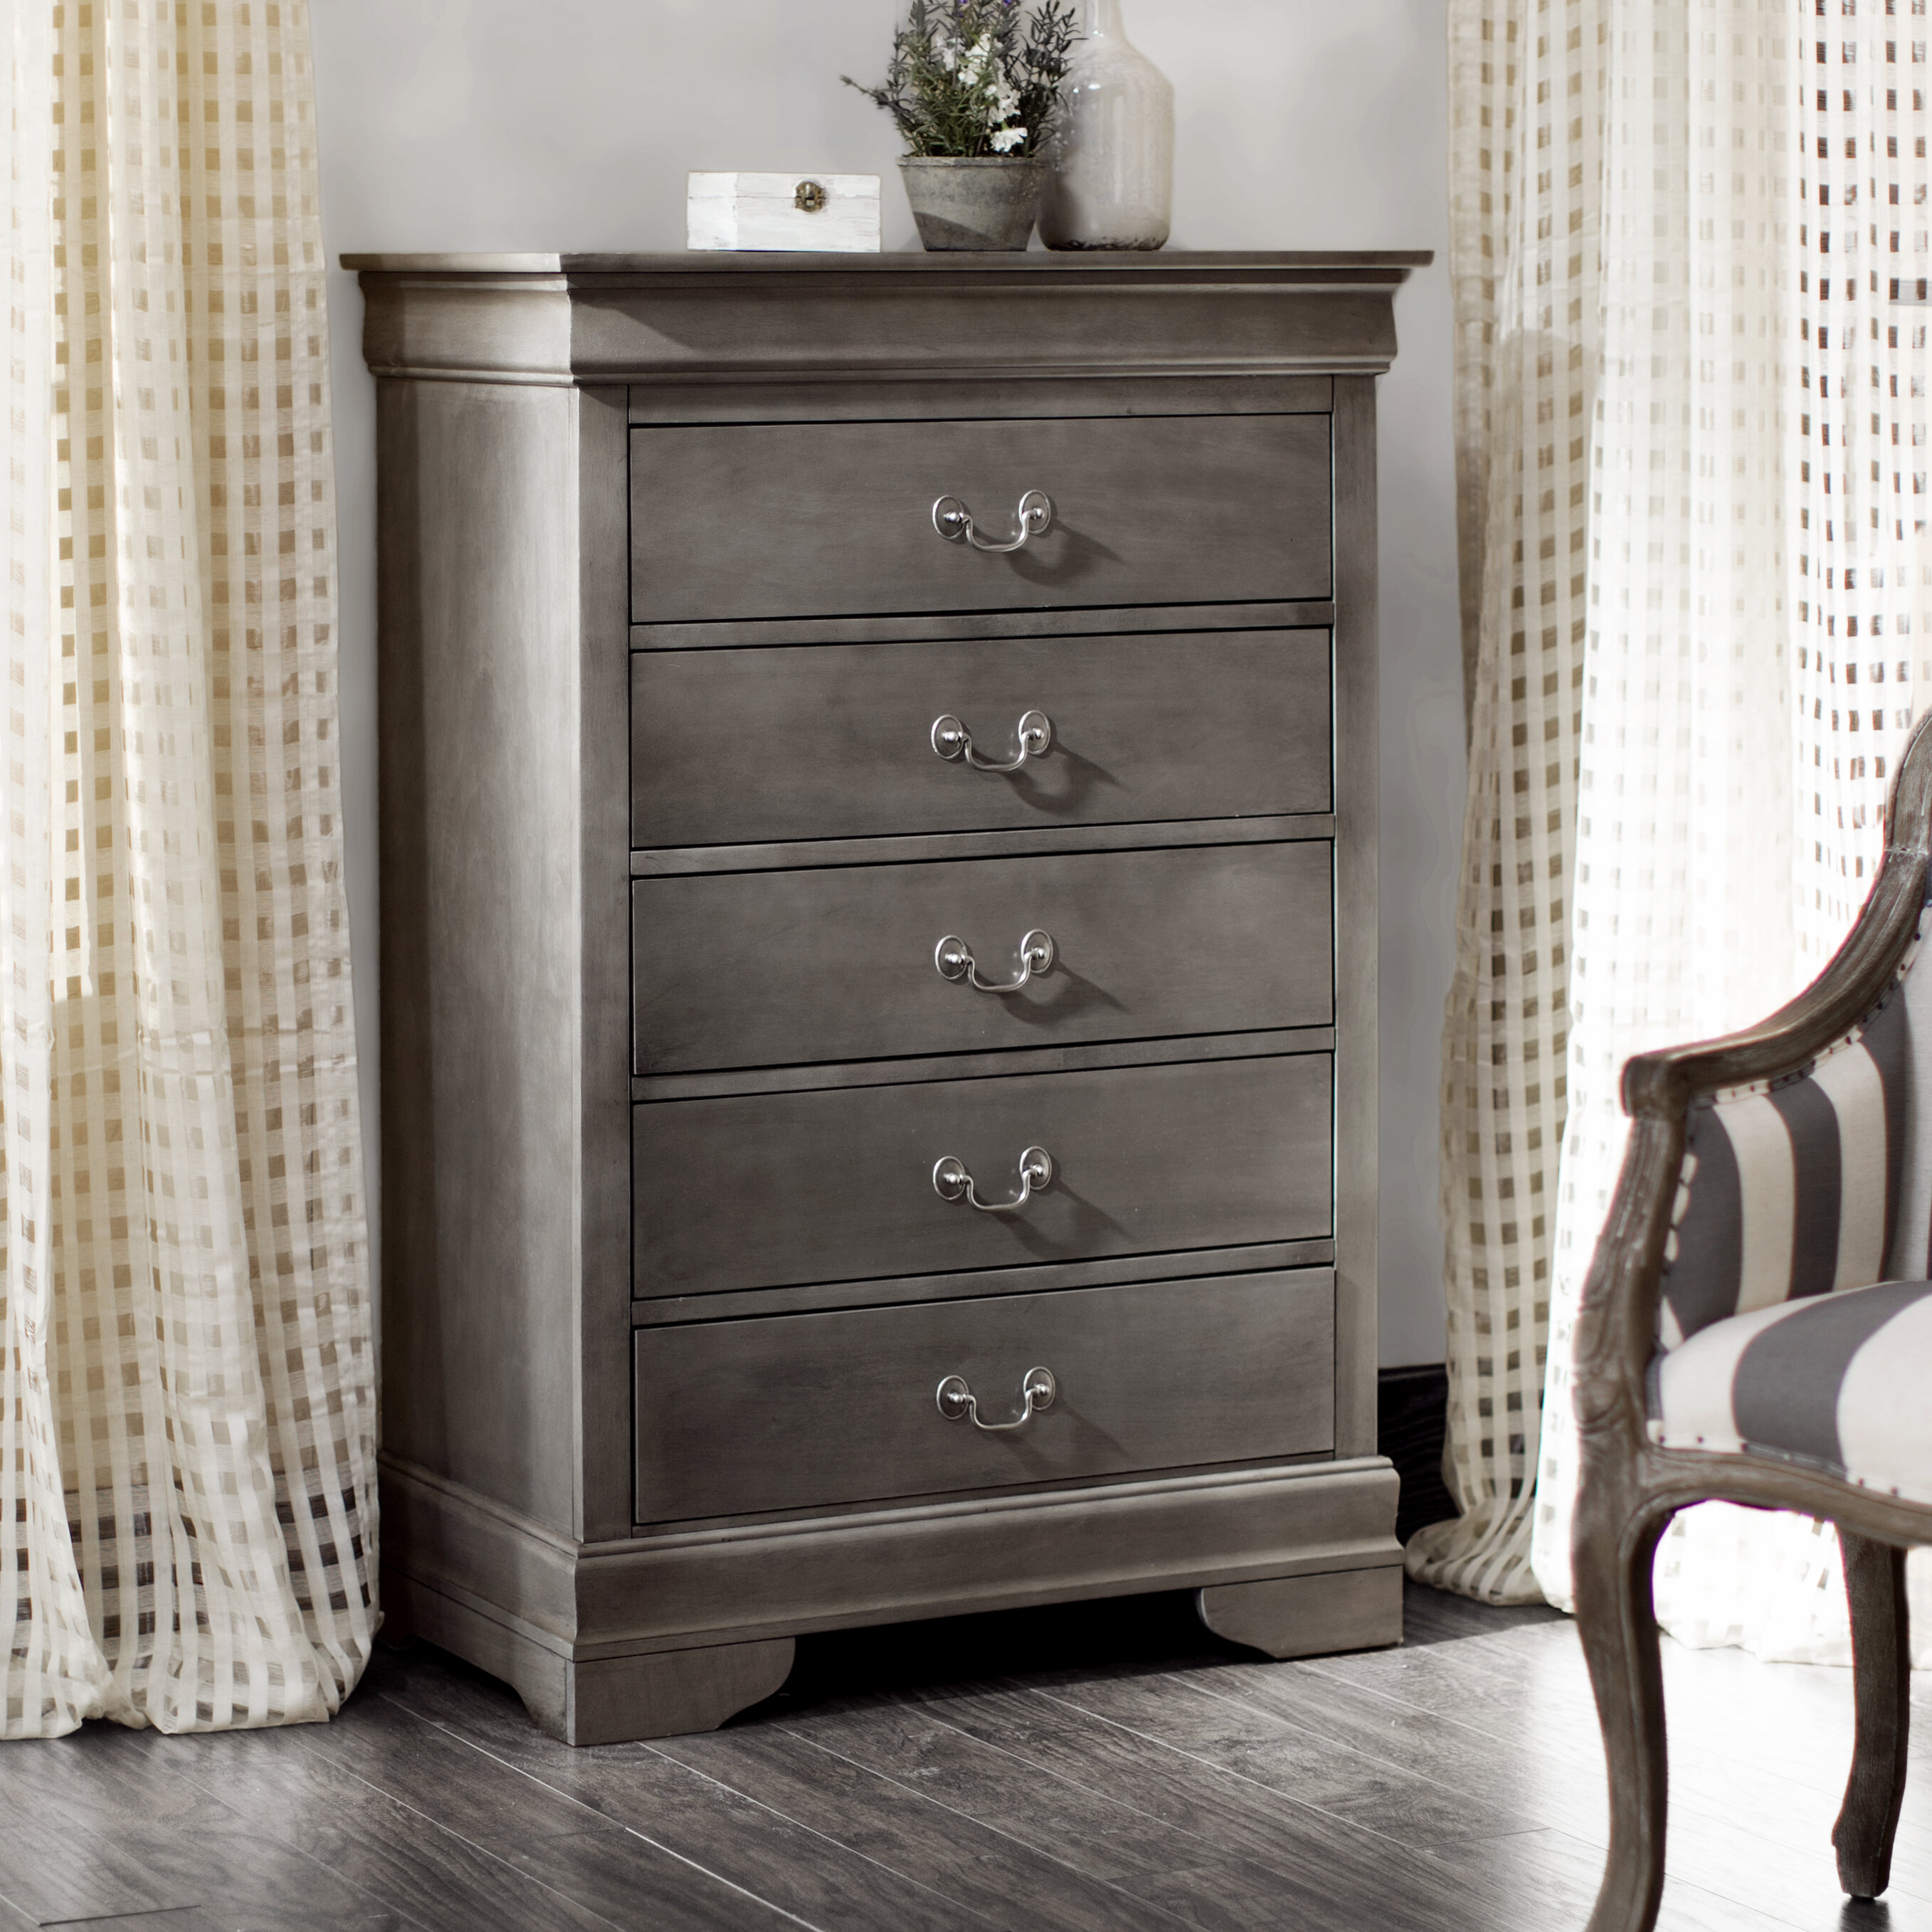 selacy furniture product drawer chest cupboard